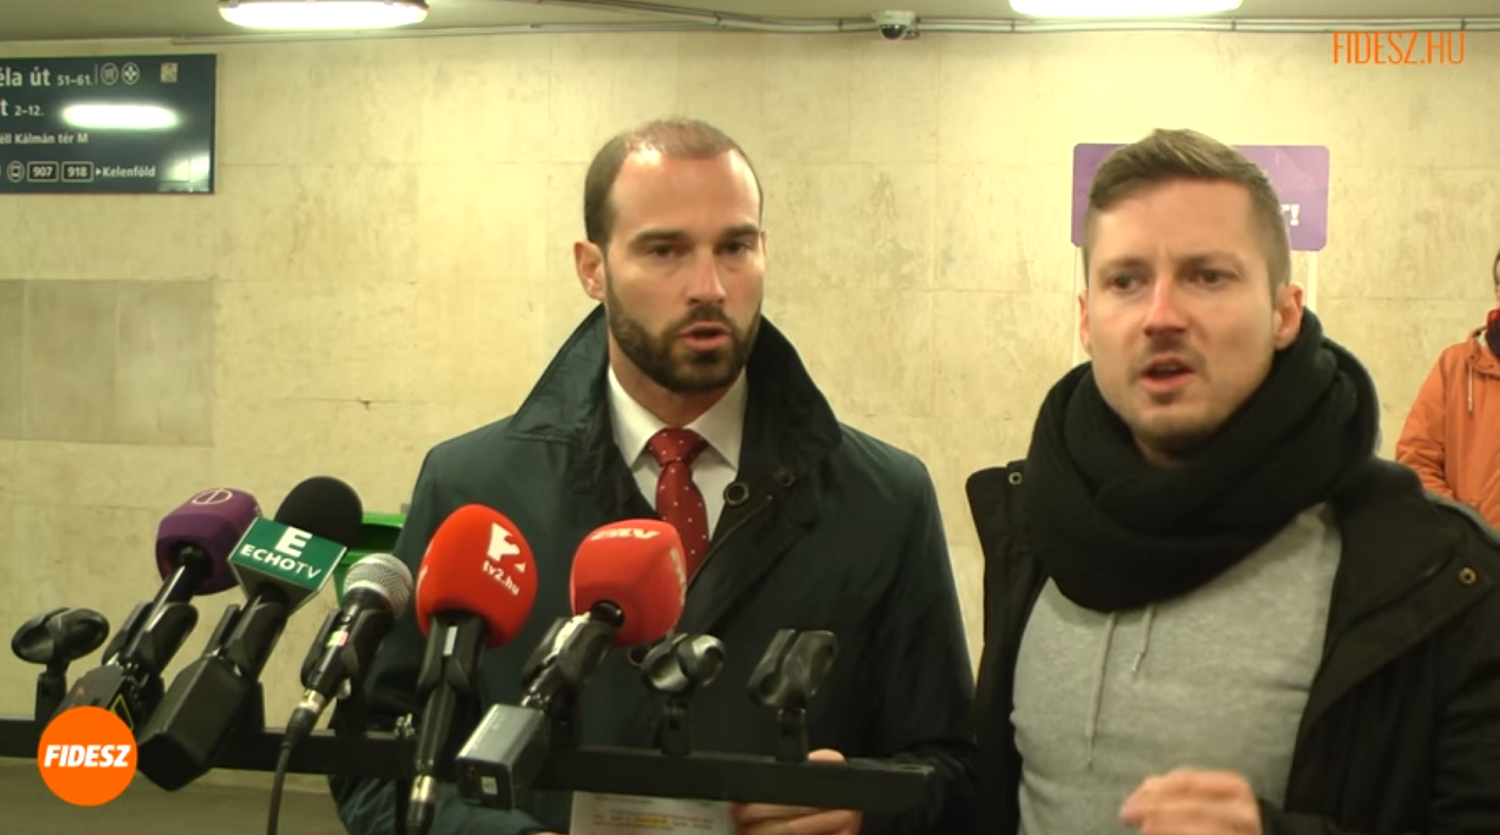 momentums-tamas-soproni-interrupts-fidesz-kdnp-press-conference.png